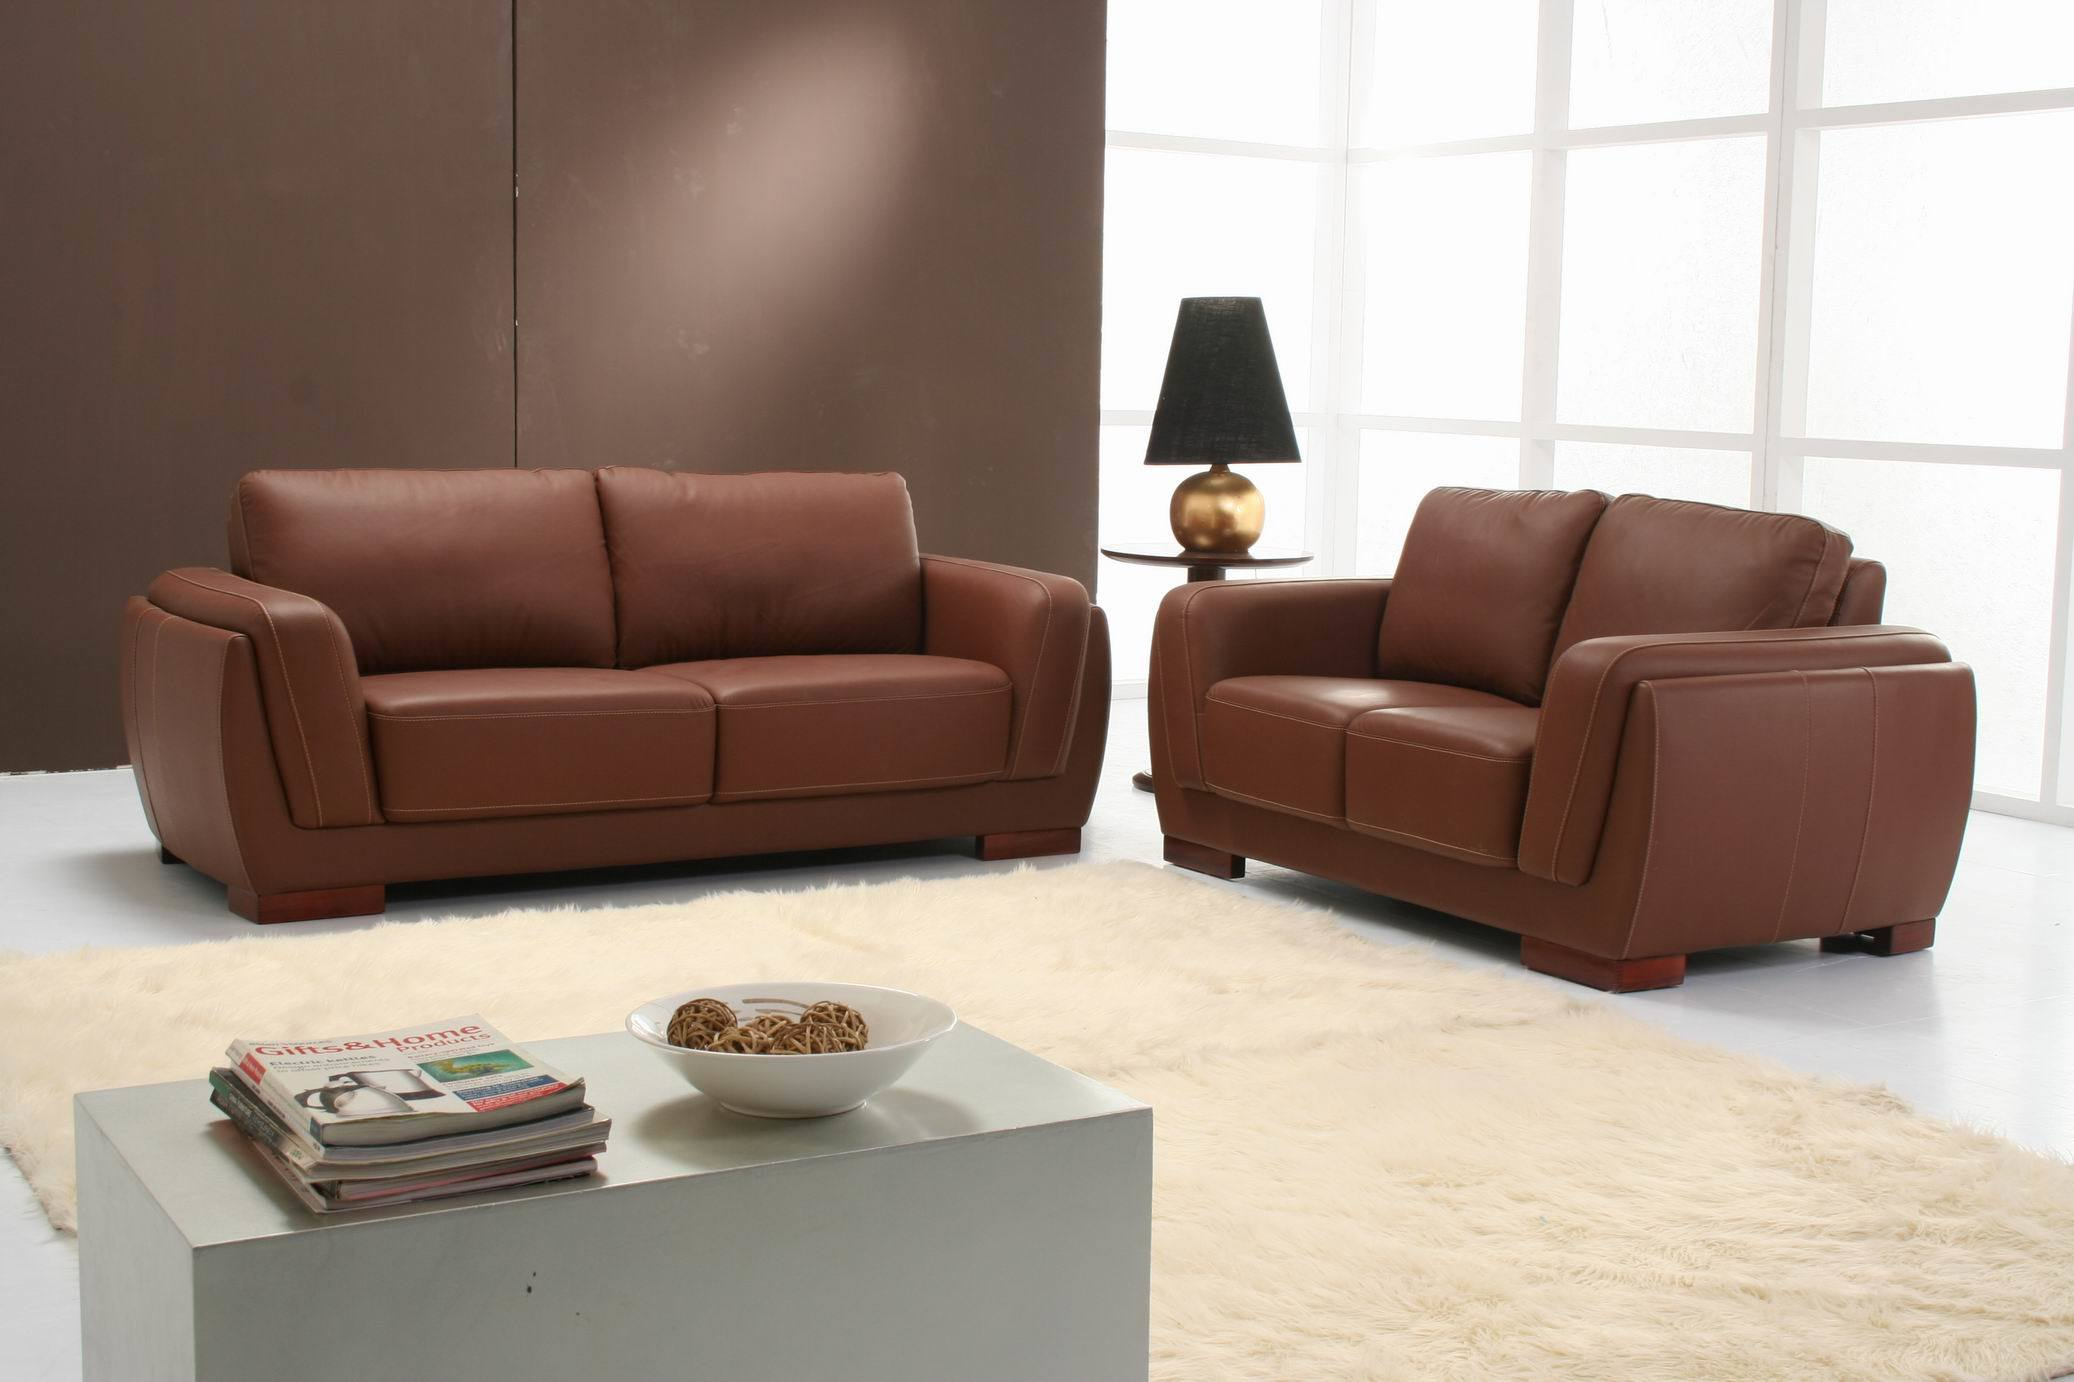 Luxury Leather Sofa Elegance In Your Home